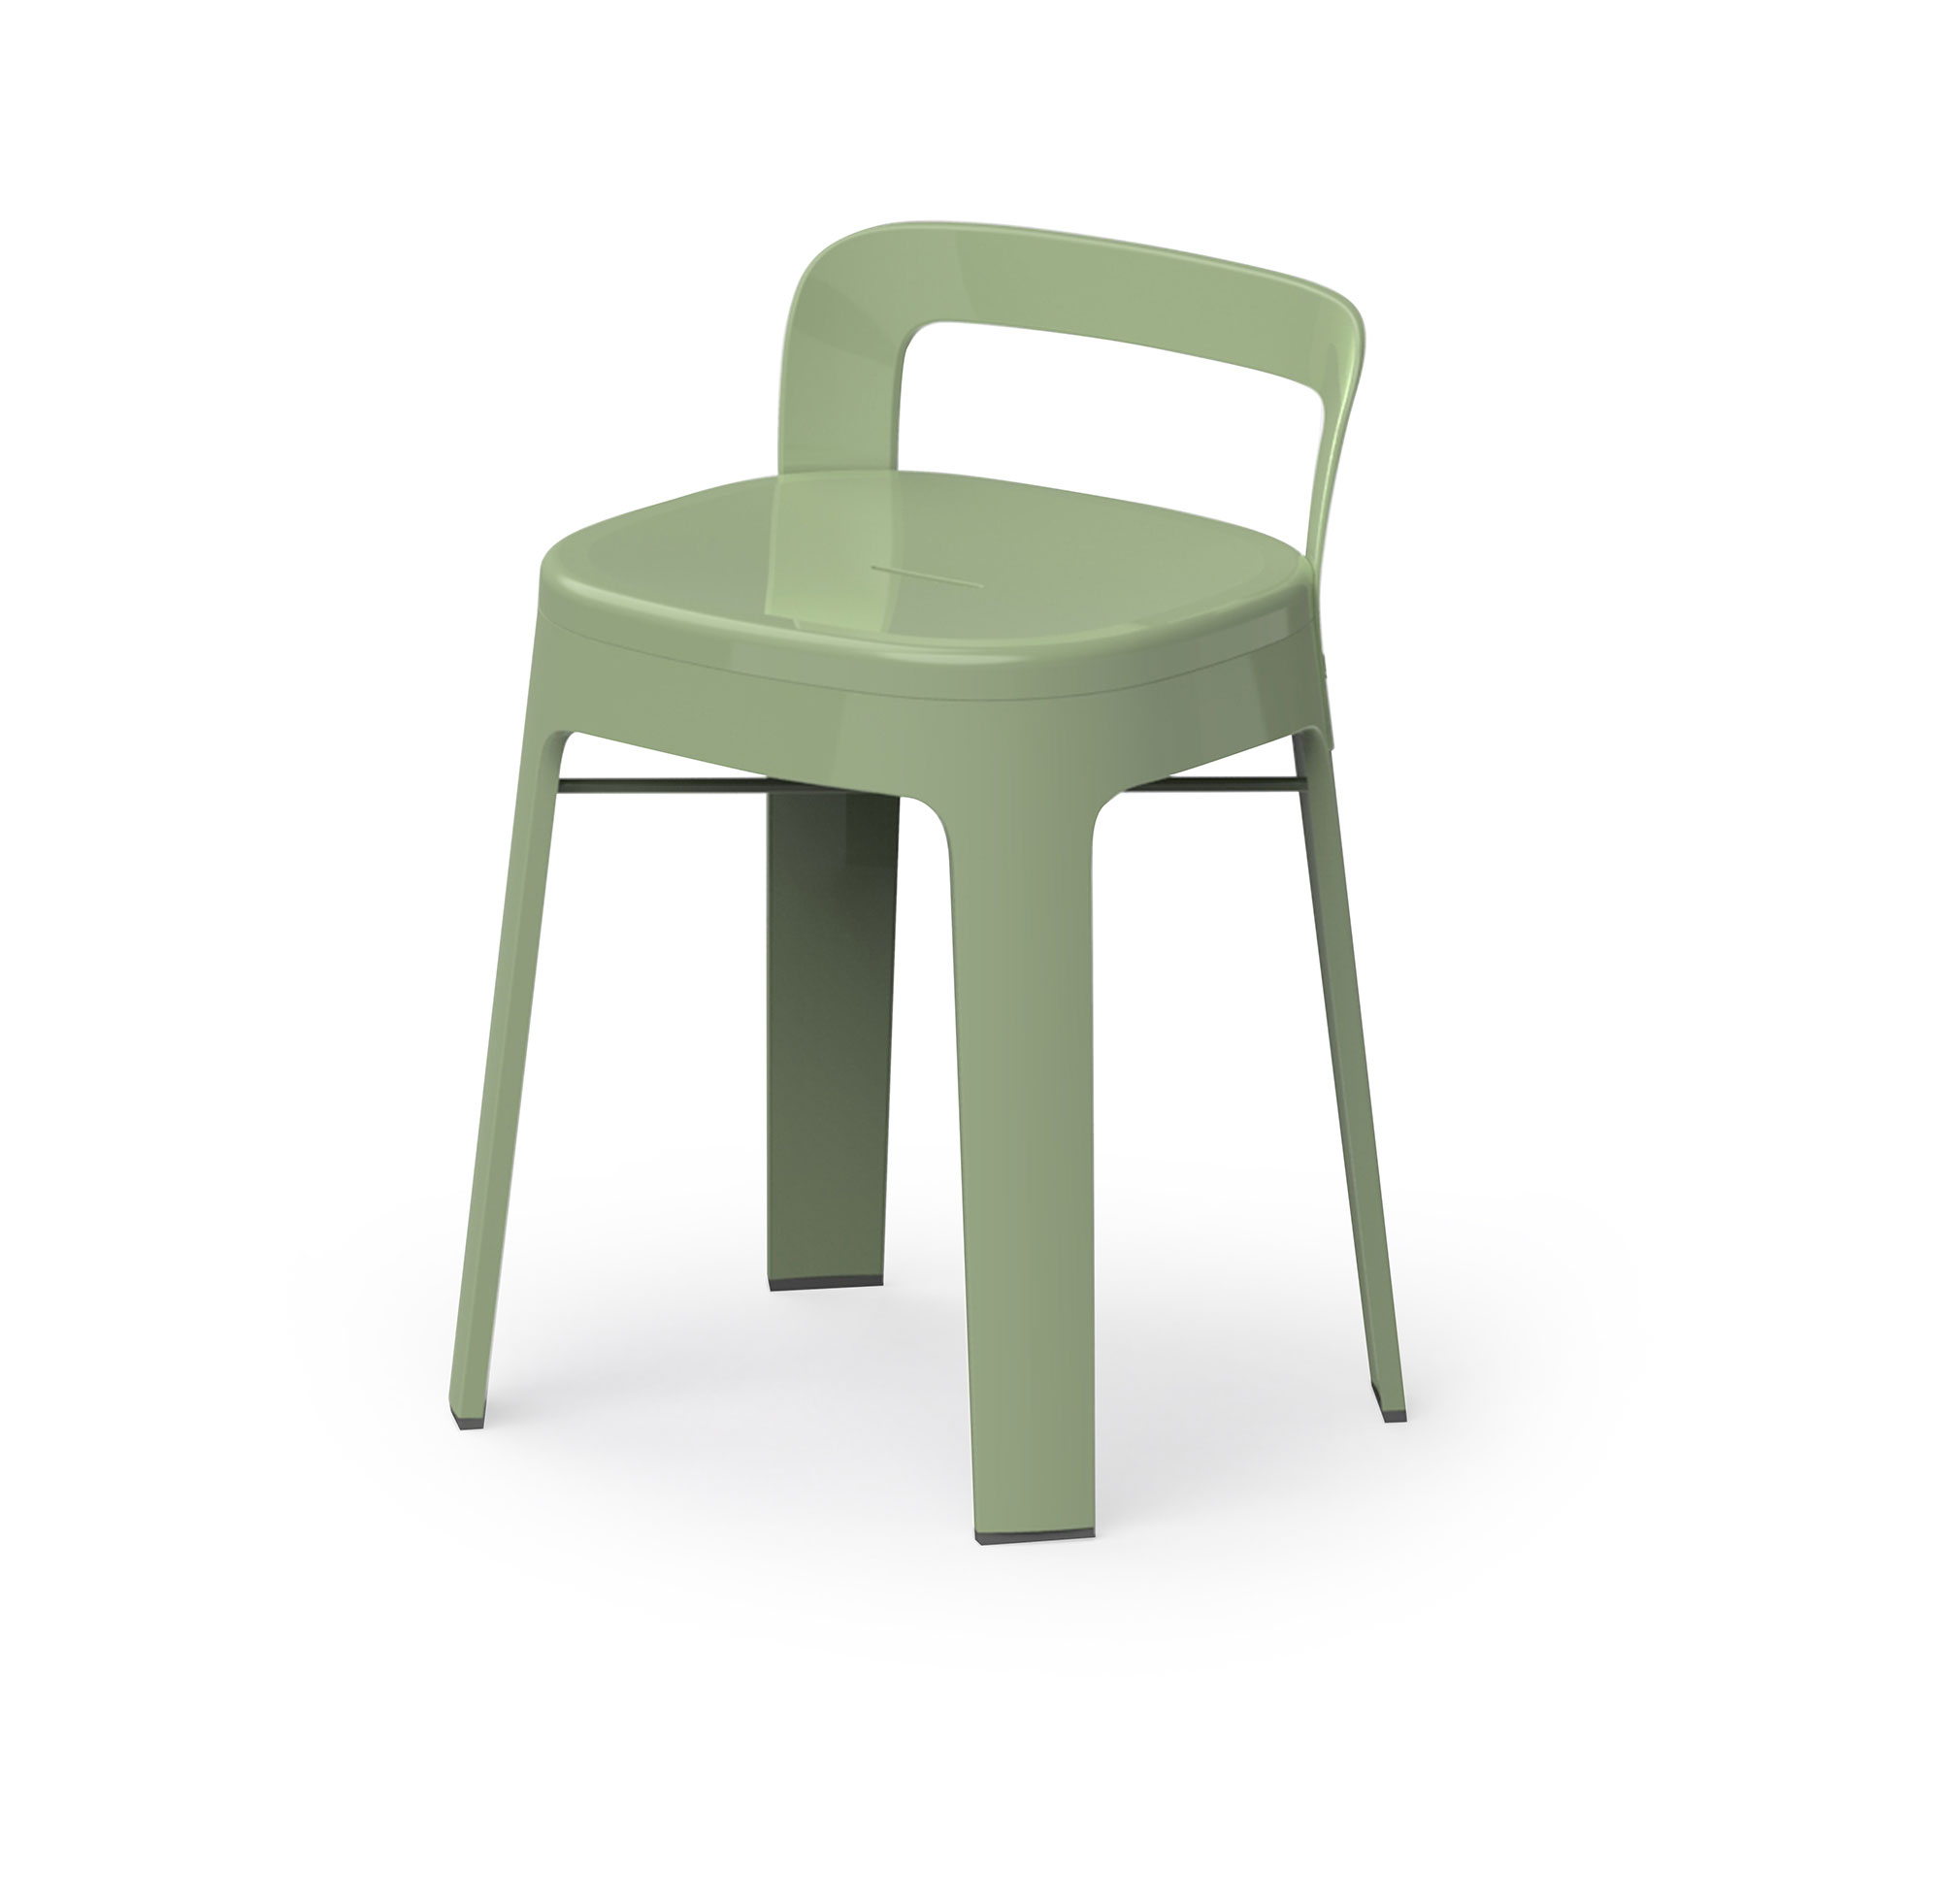 "Hocker mit Lehne ""To Go"" - Design OMBRA LOW von RS Barcelona"